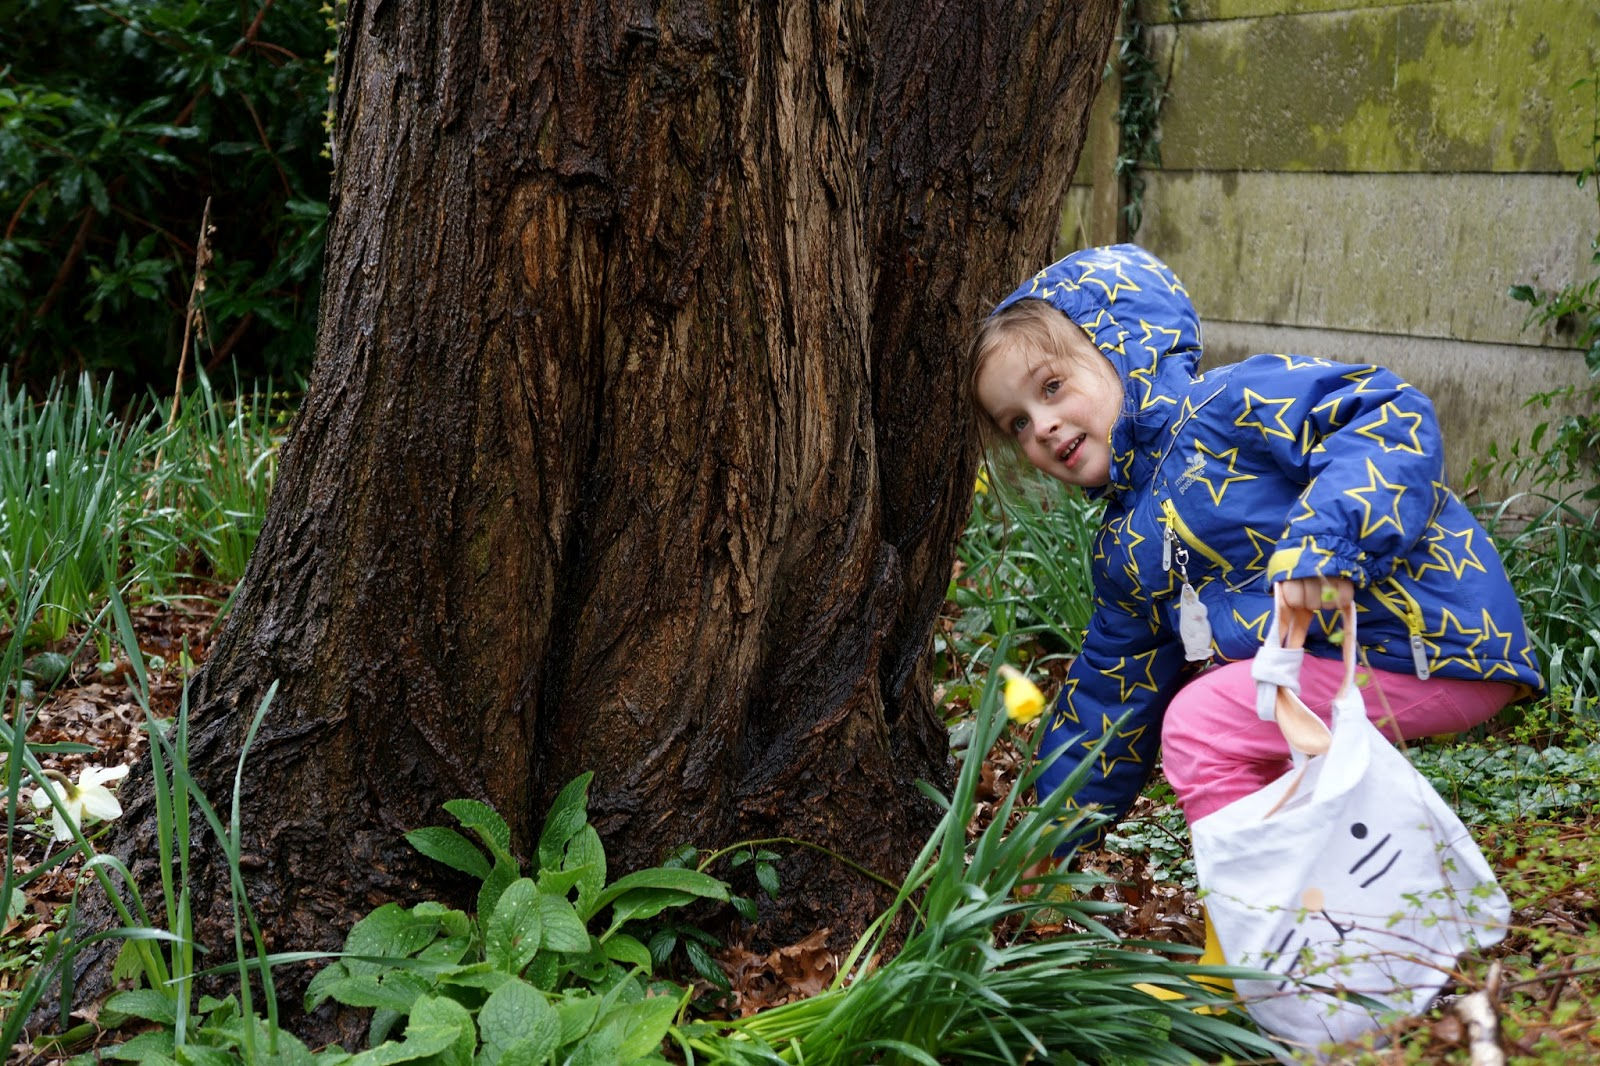 Little girl picking up an Easter egg under a tree